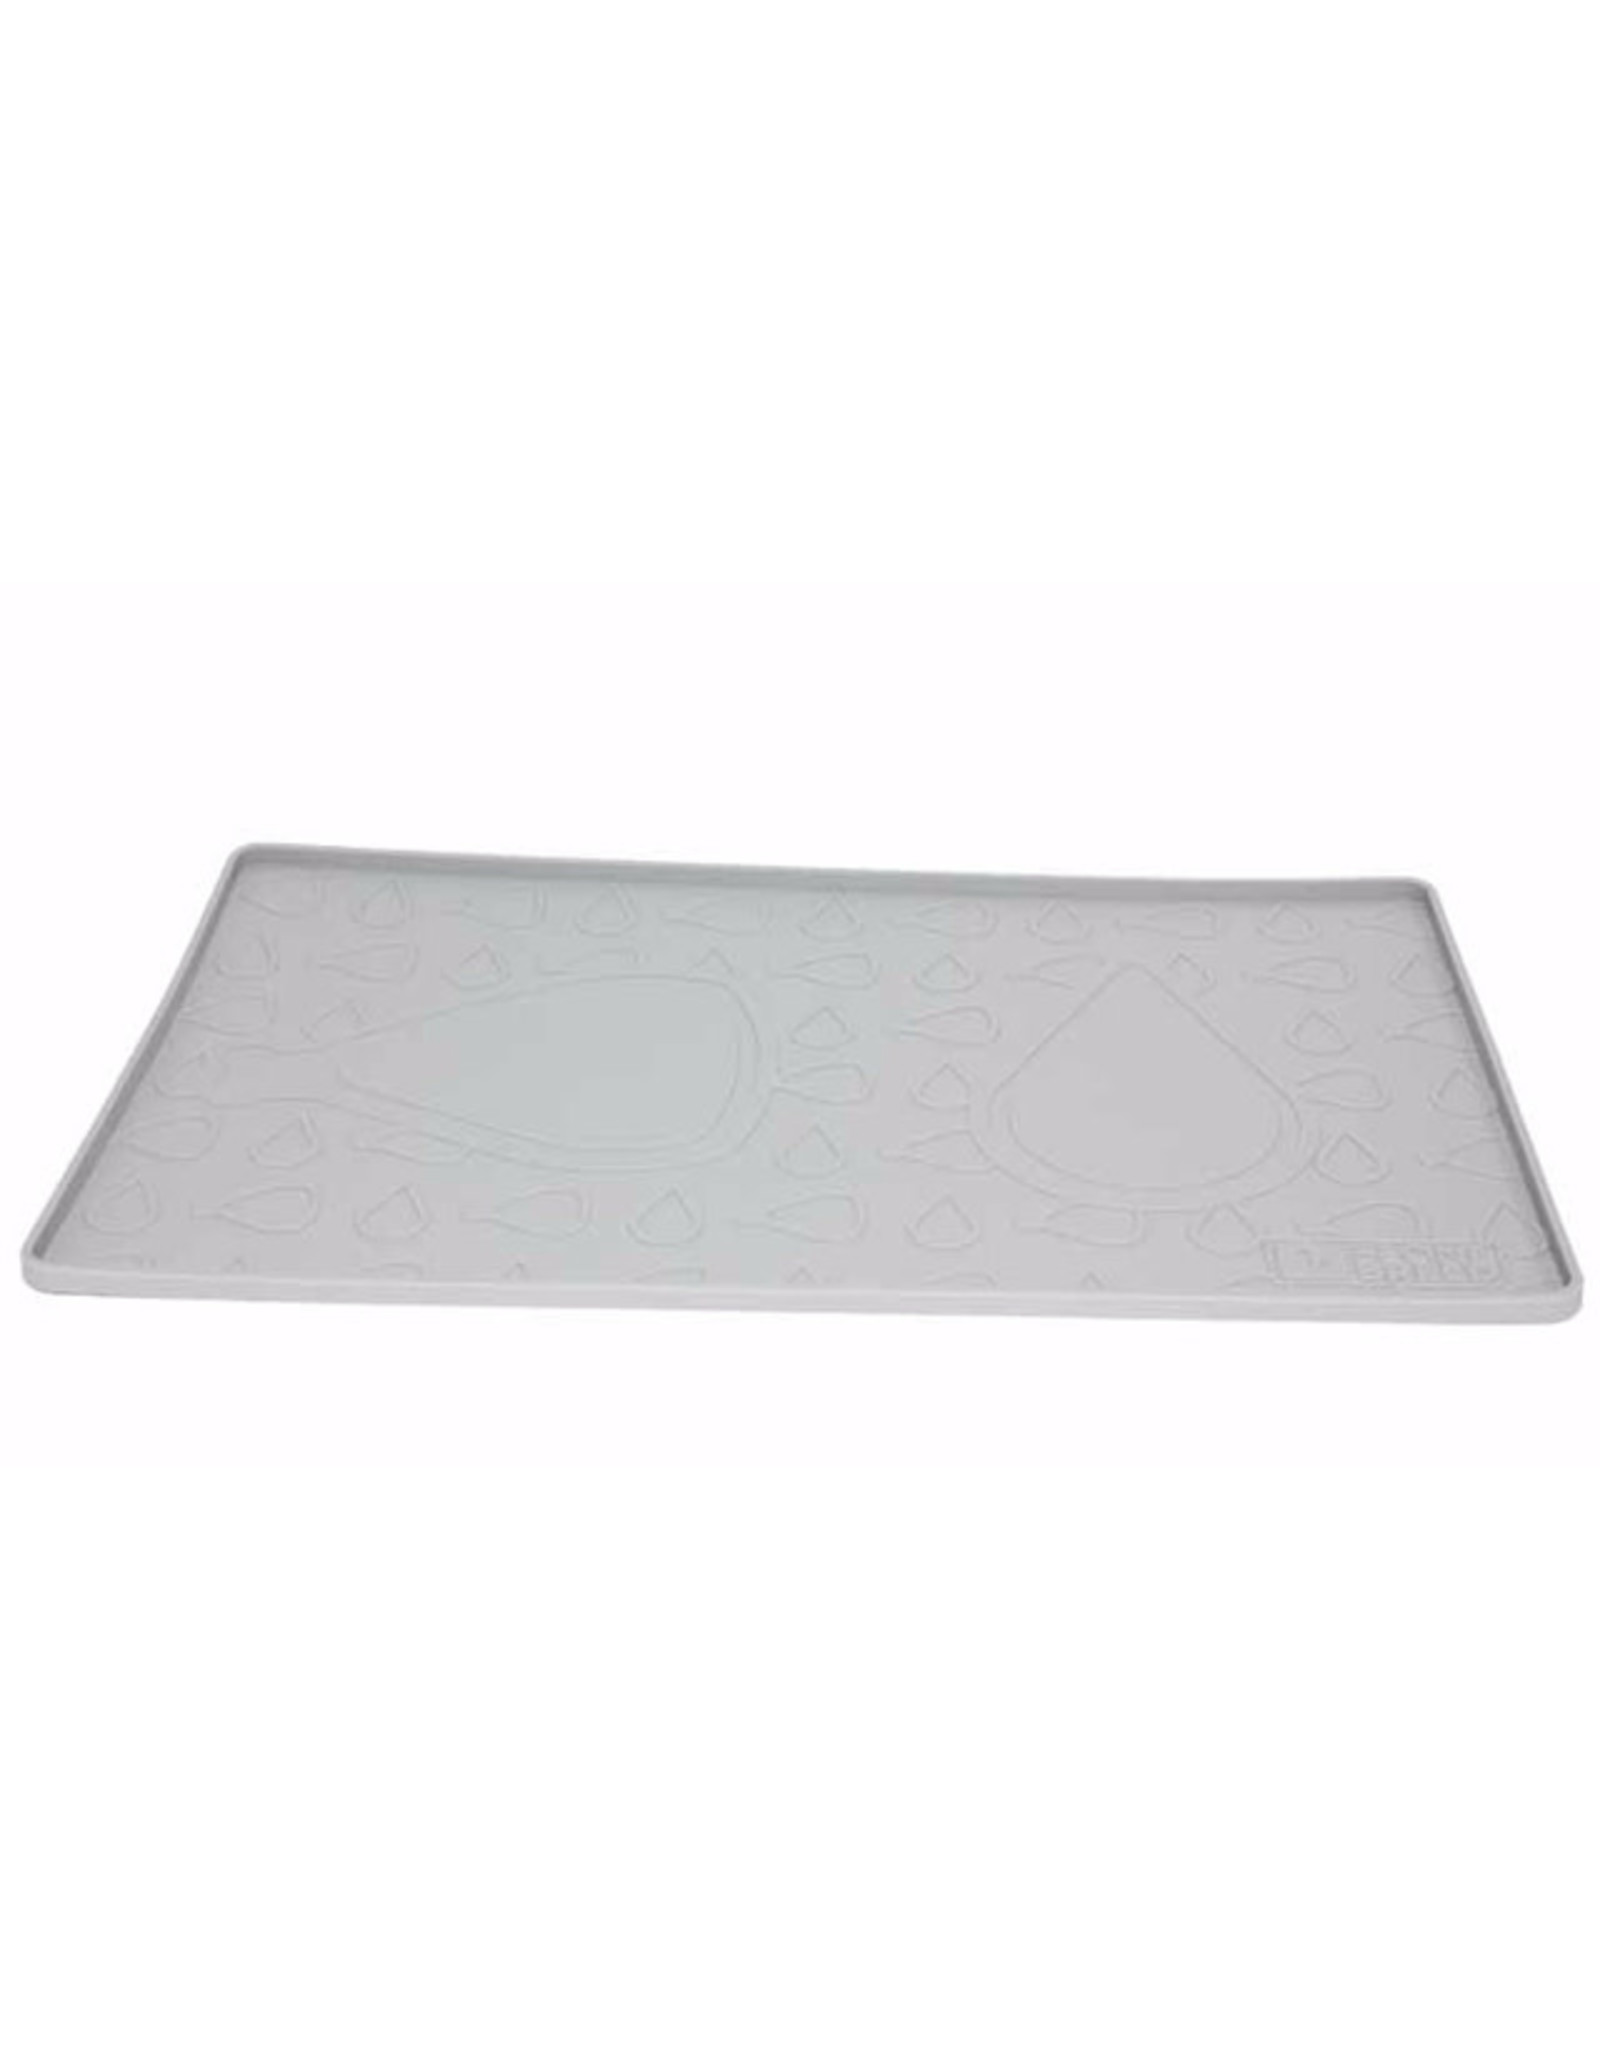 Be One Breed Silicone Mat Moroccan Grey 19x11